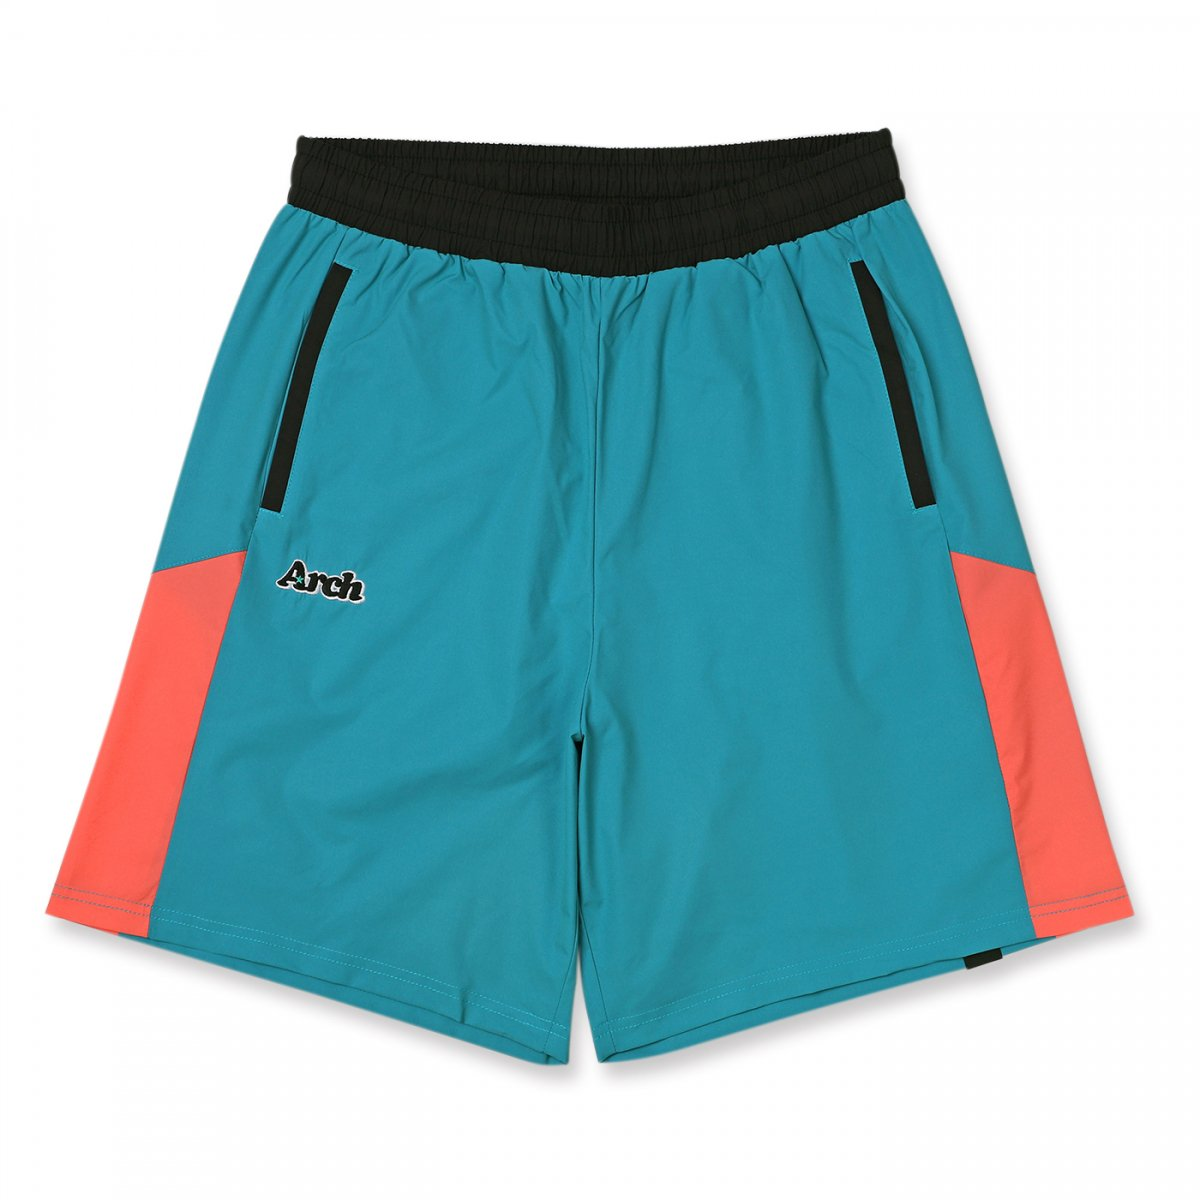 rise paneled shorts 【peacock blue】